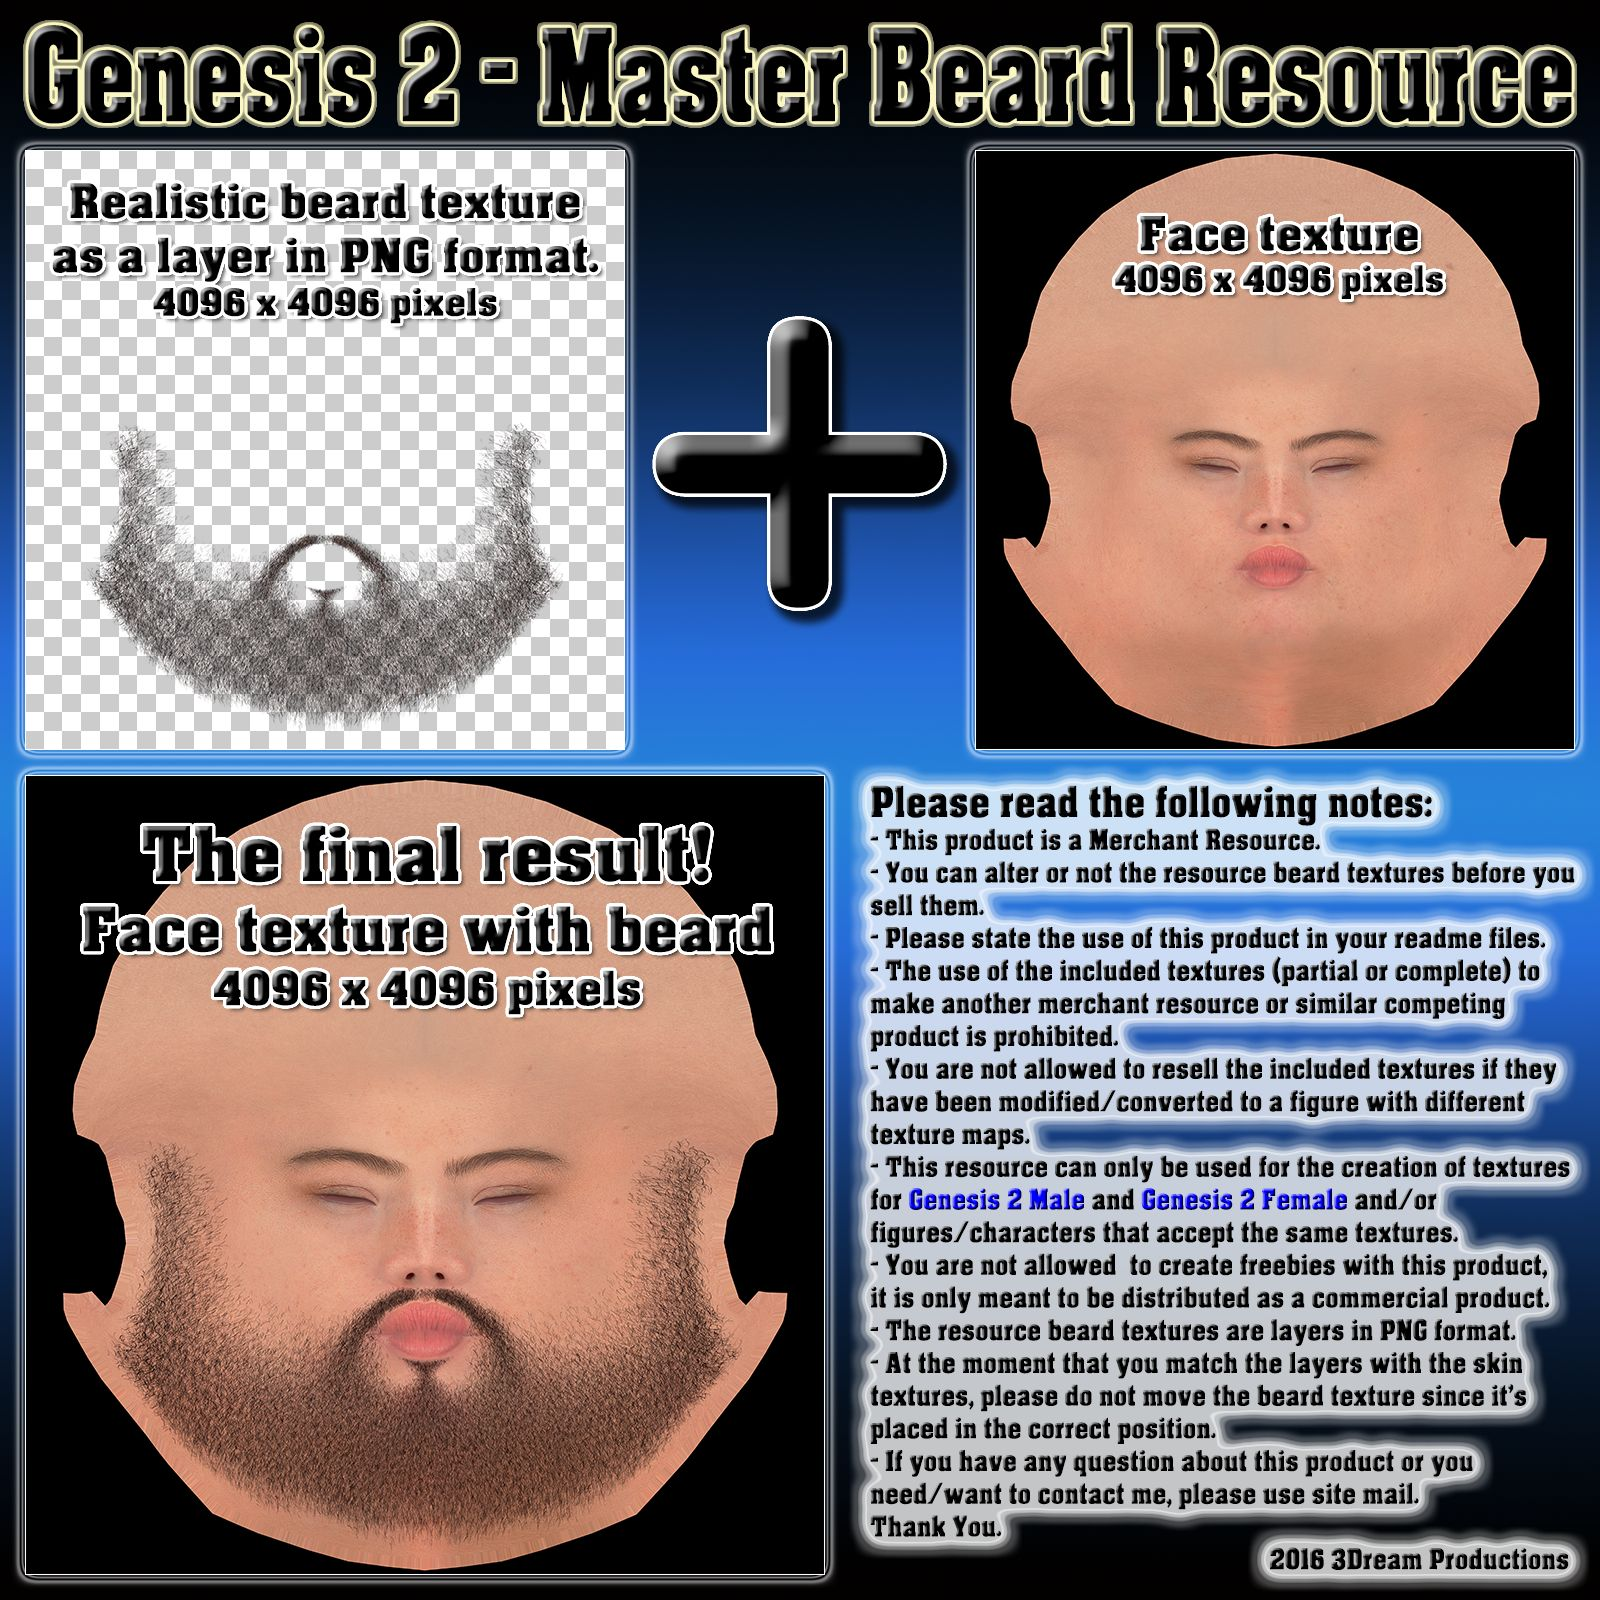 Genesis 2 - Master Beard Resource